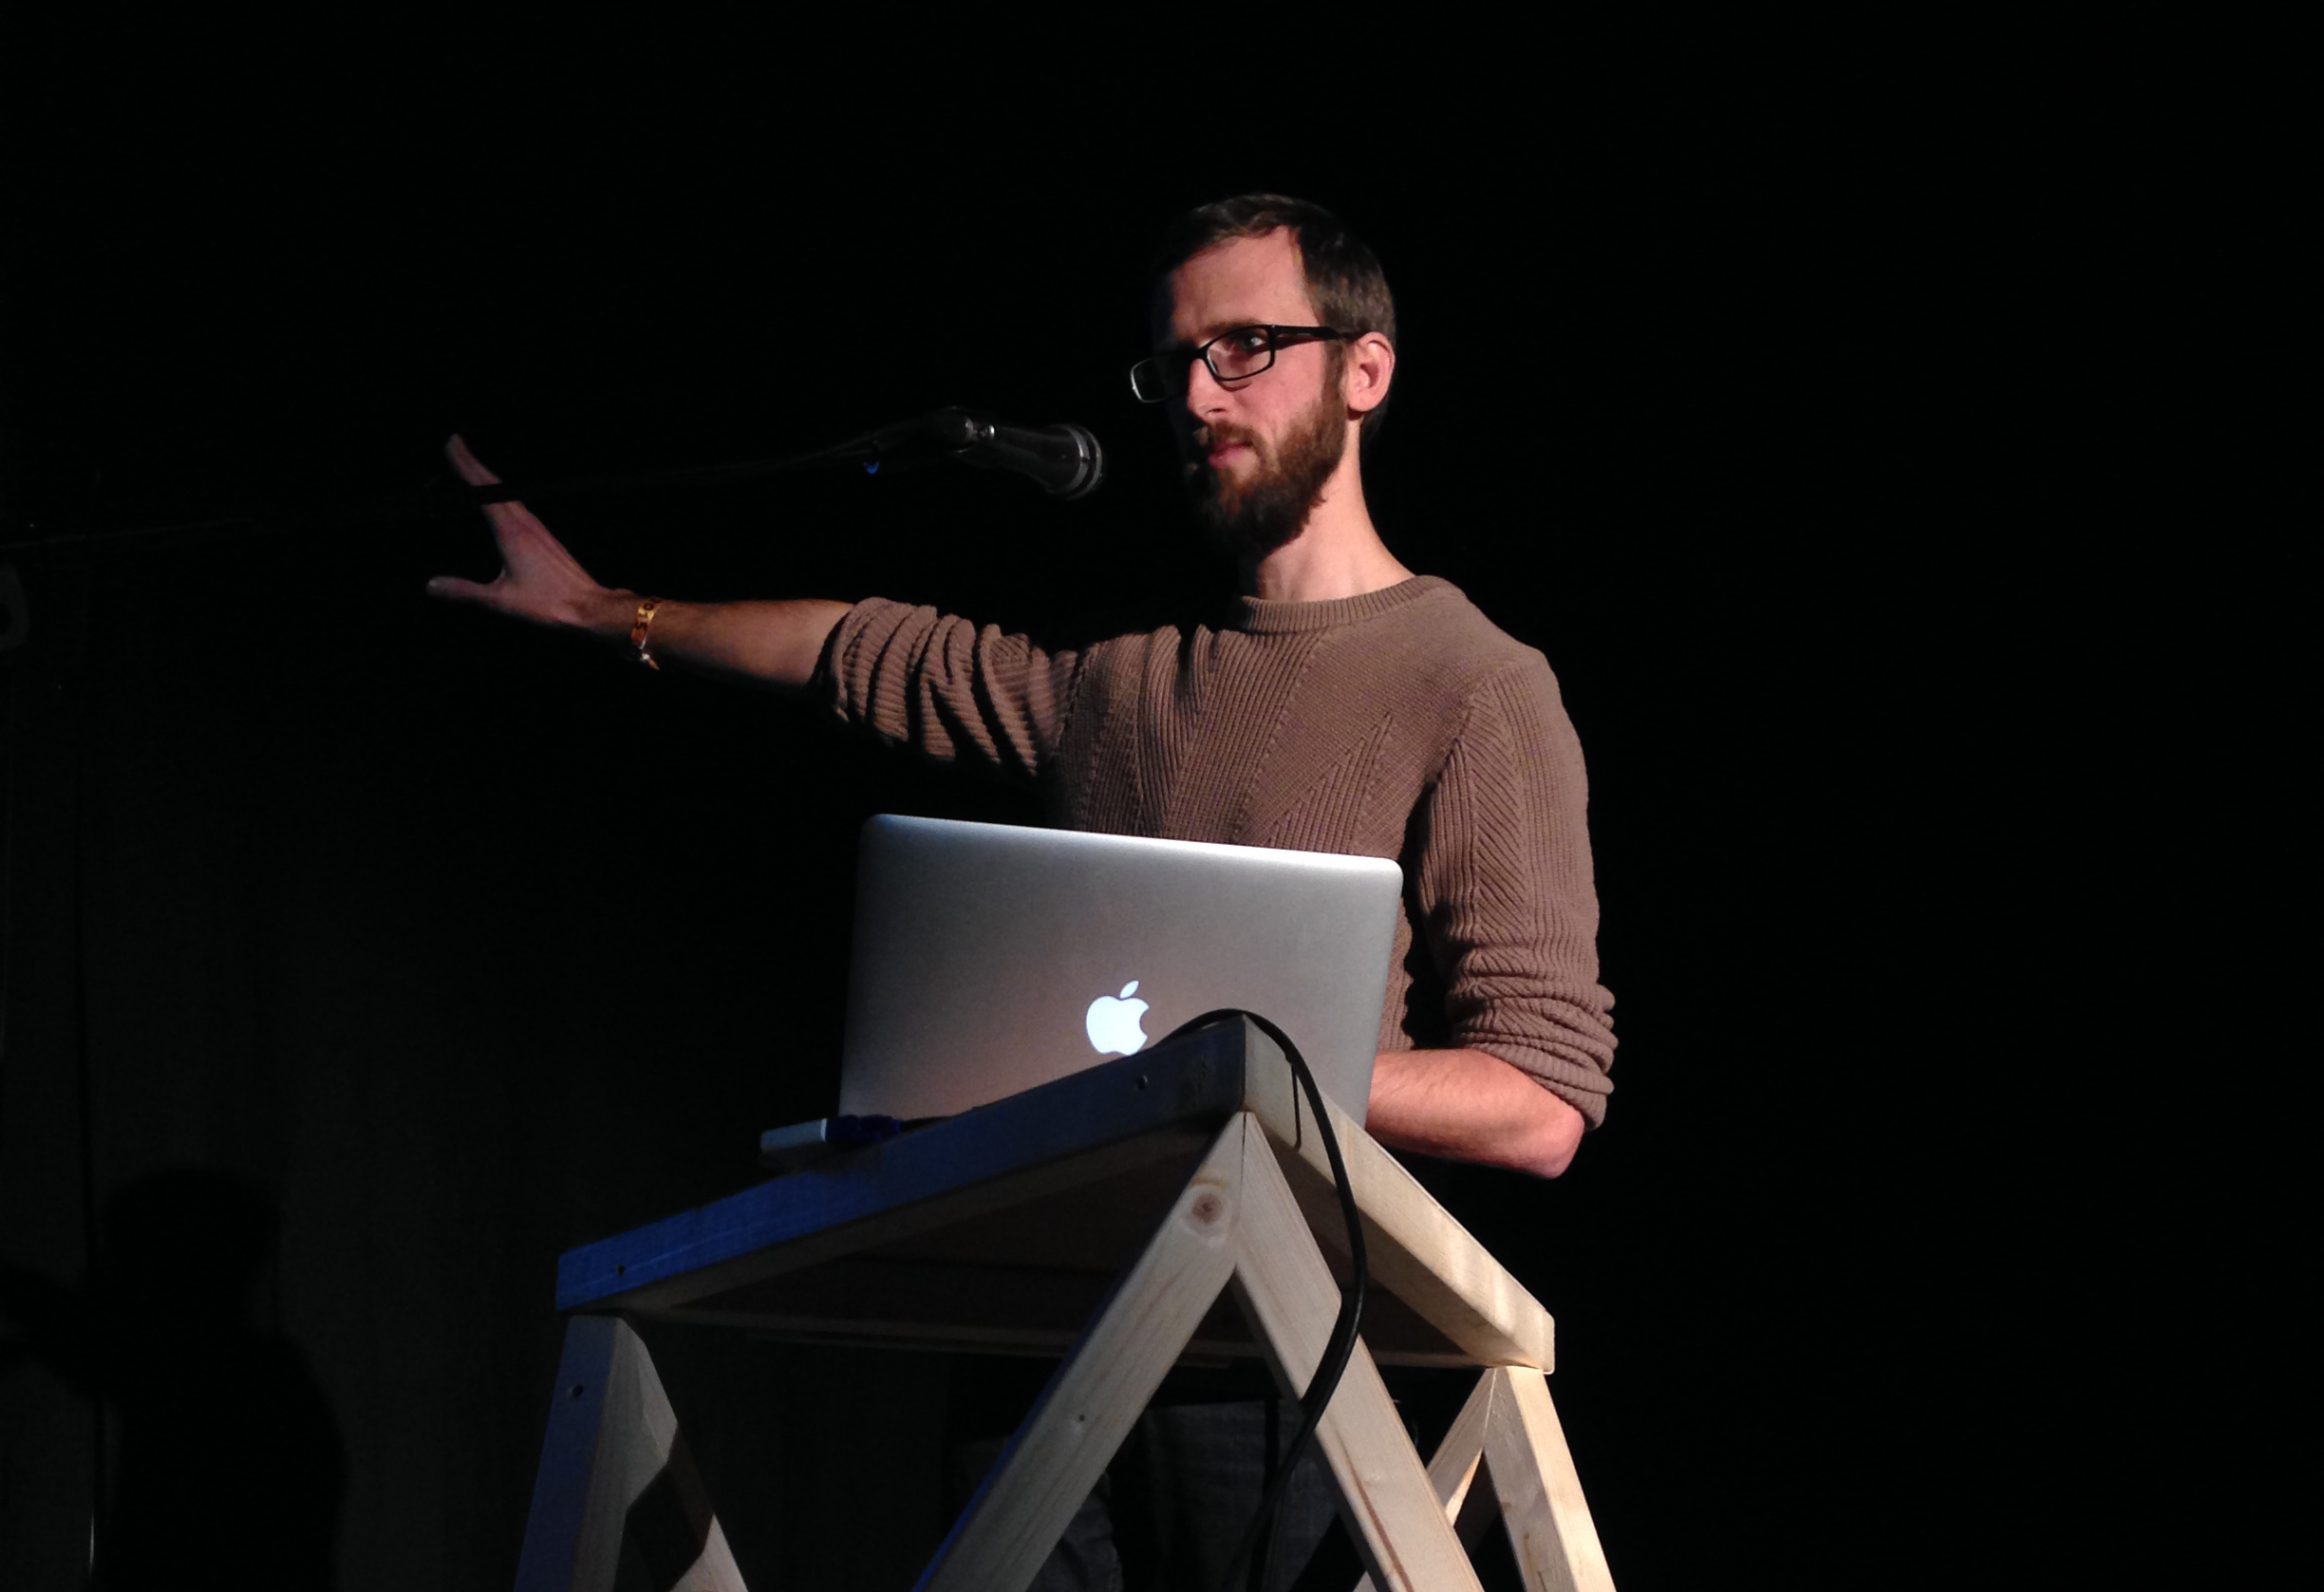 Pippin Barr presenting on stage at a conference.